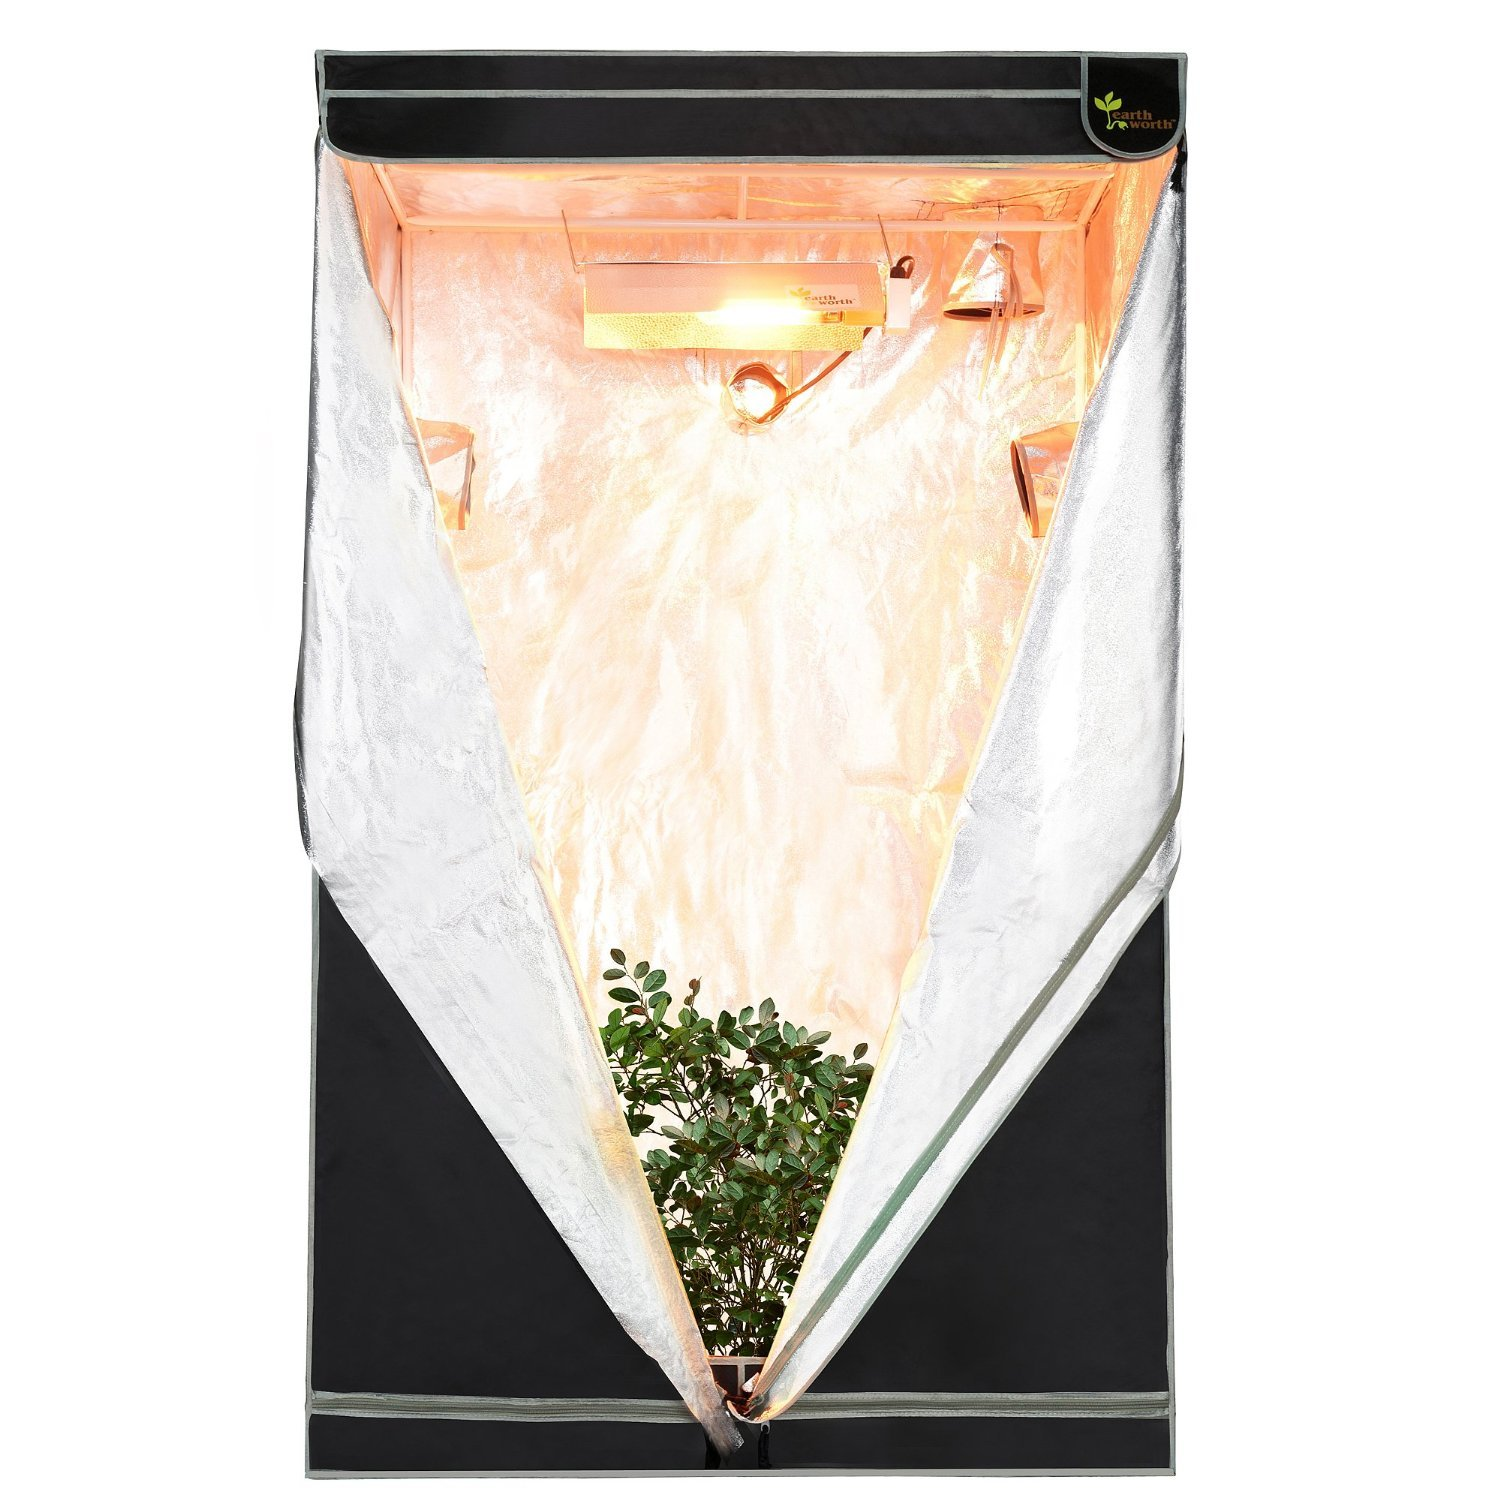 earthworth hydro shanty grow tent